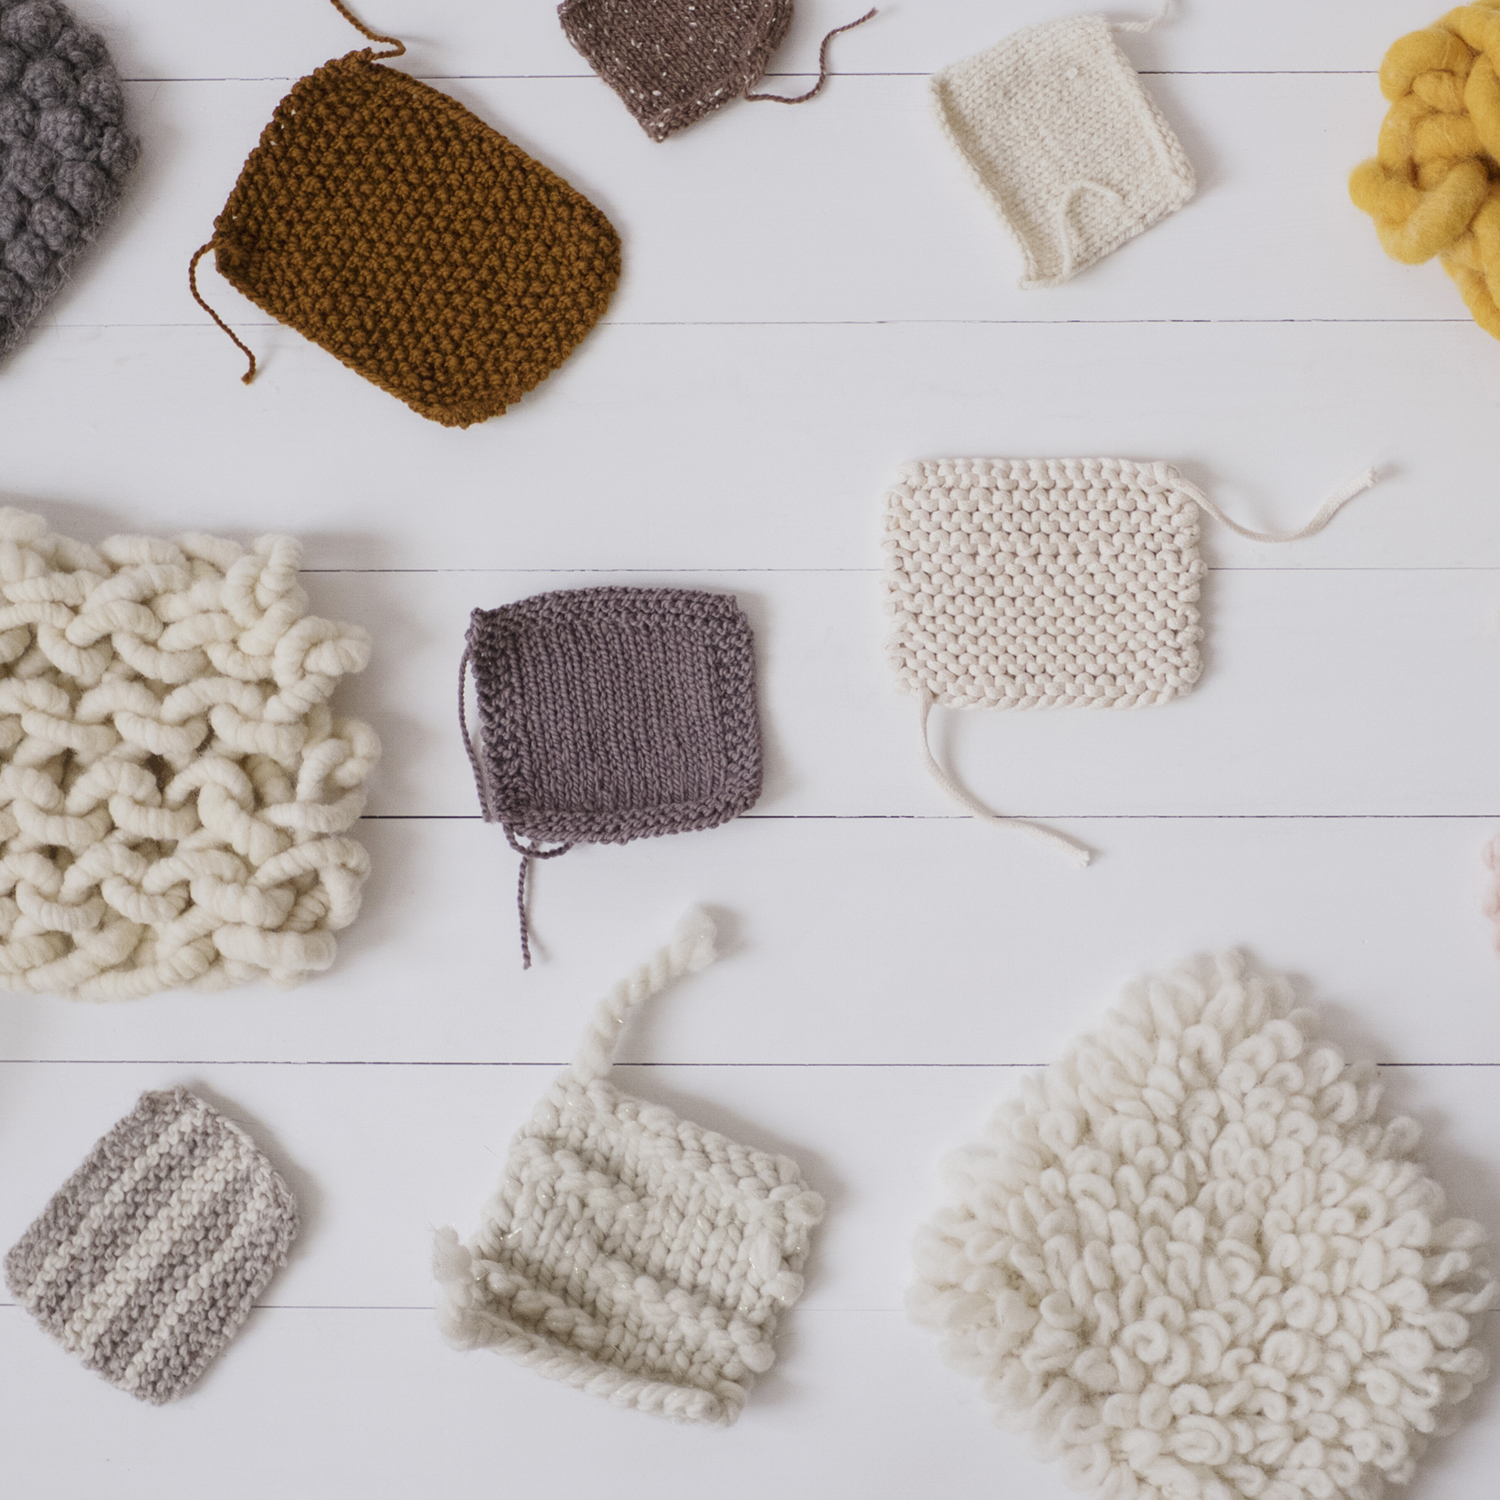 Knit Swatches